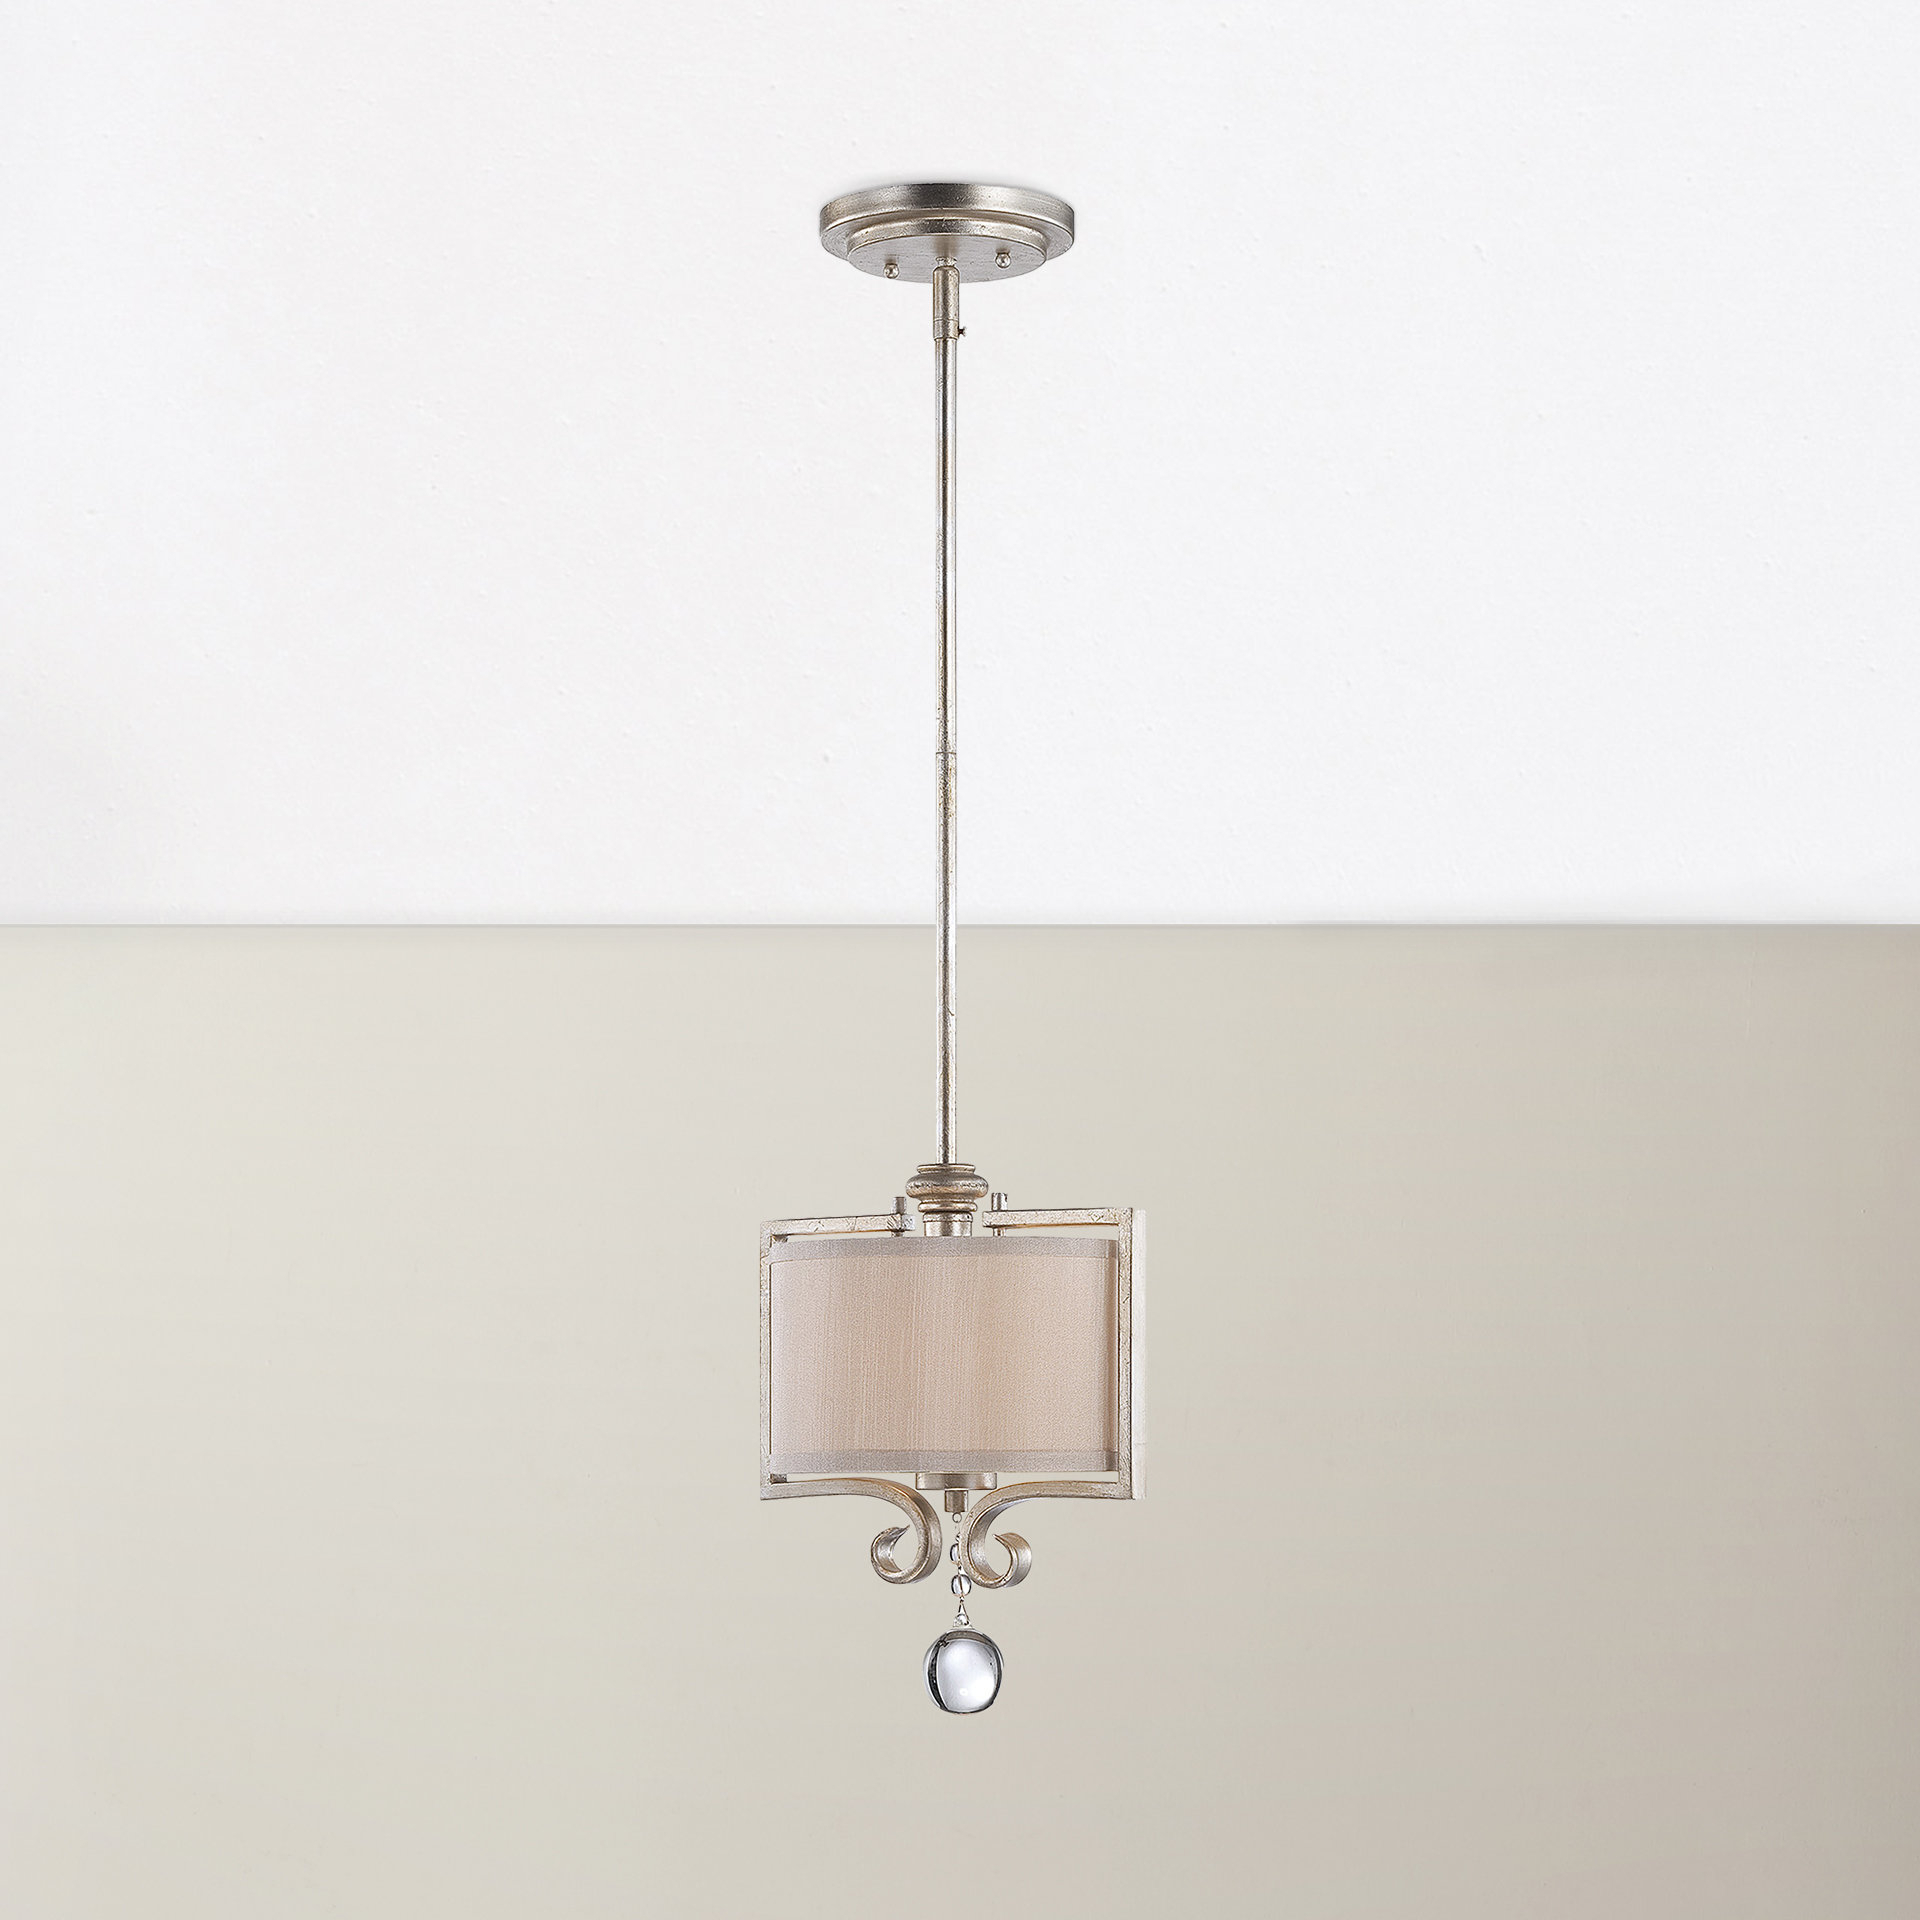 Beasley 1-Light Single Drum Pendant throughout Favorite Bellamira 1-Light Drum Pendants